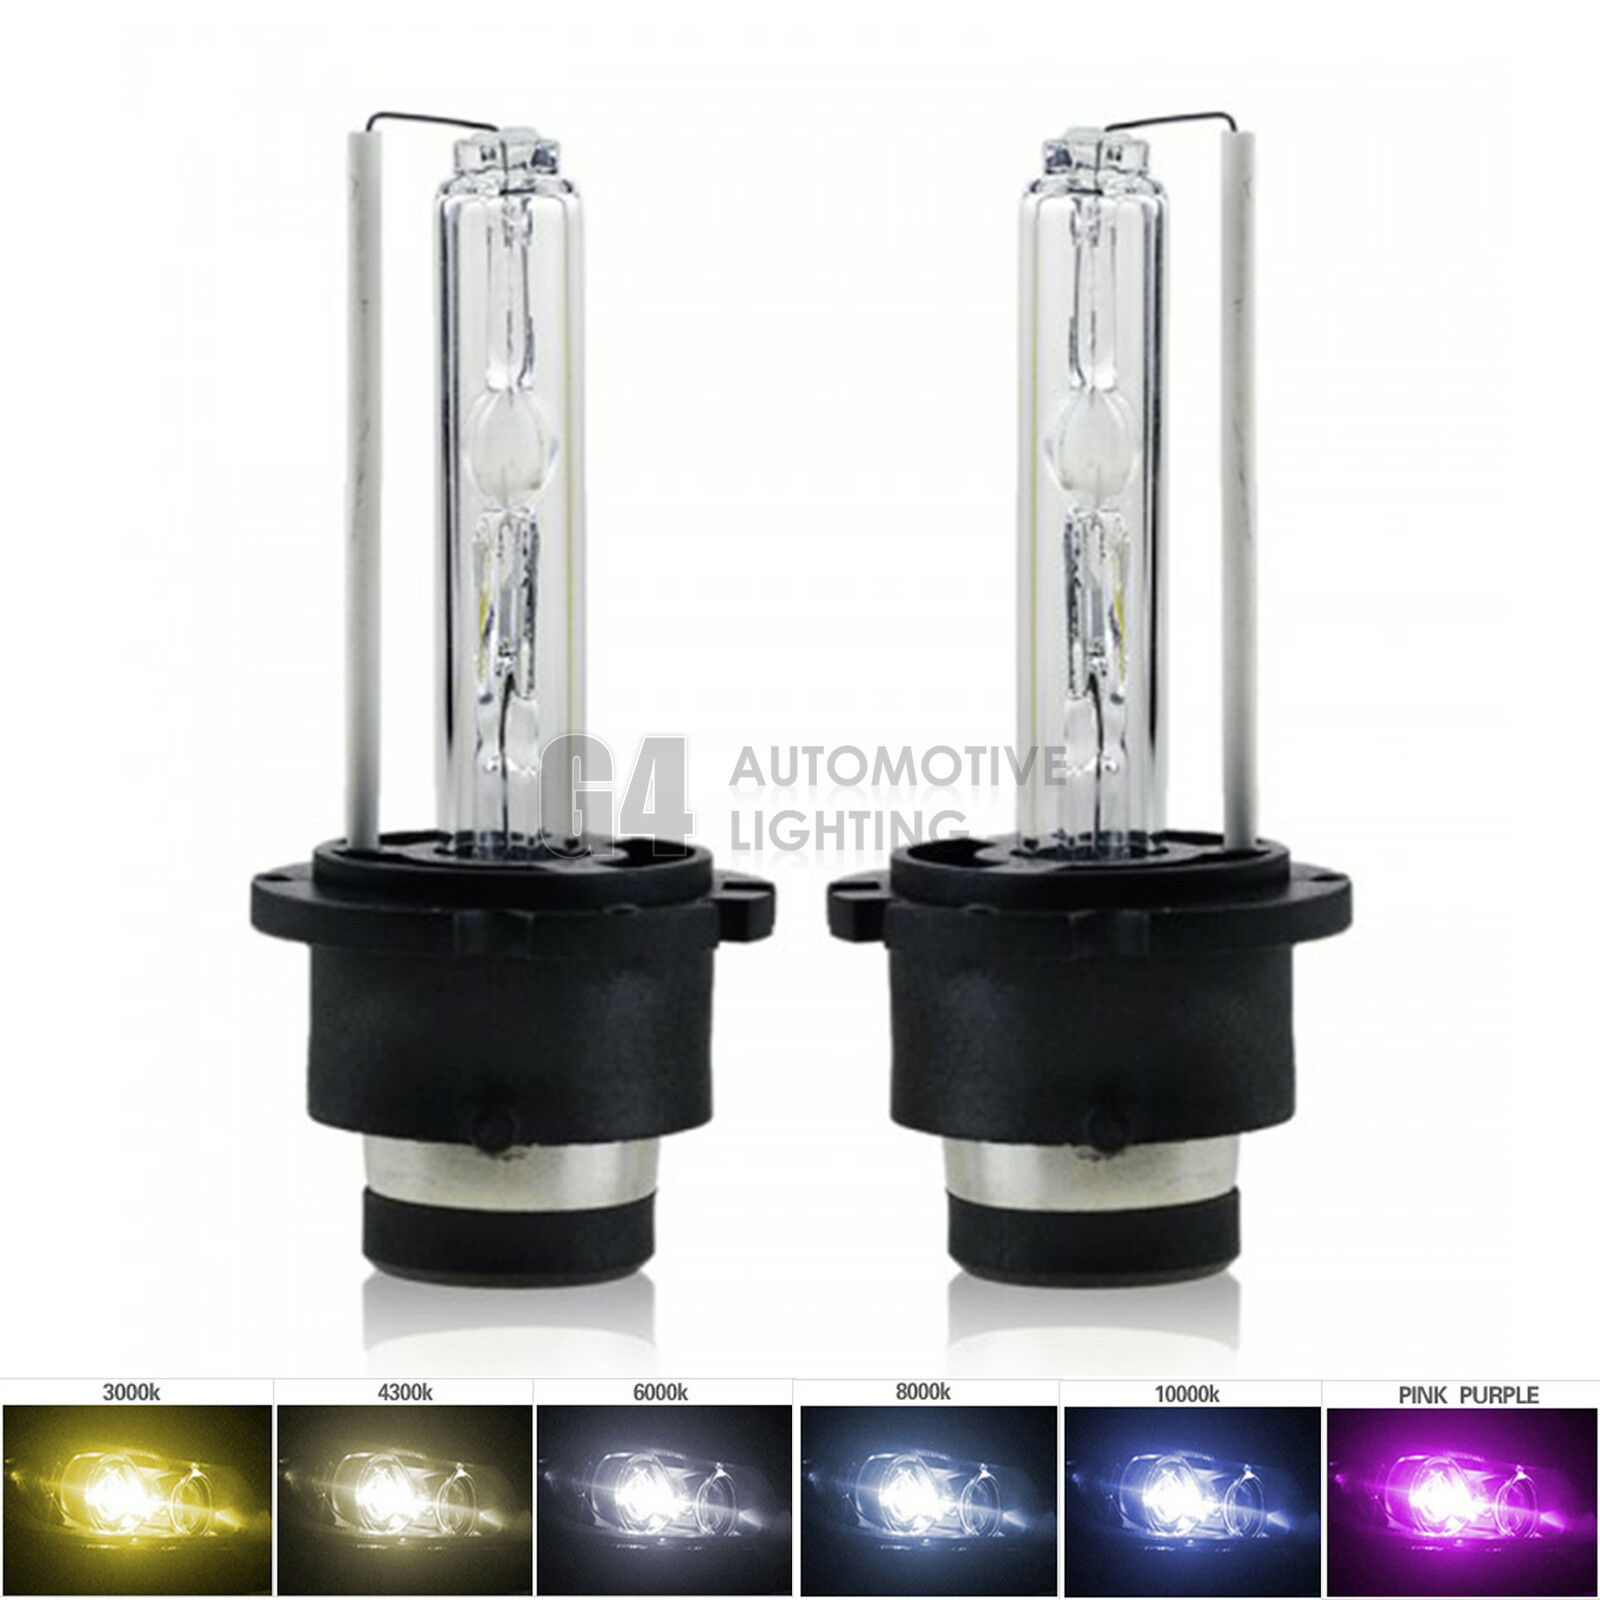 D2S Xenon HID Headlight Replacement Bulbs Pair 35W 10000K 10K OEM Factory Fit